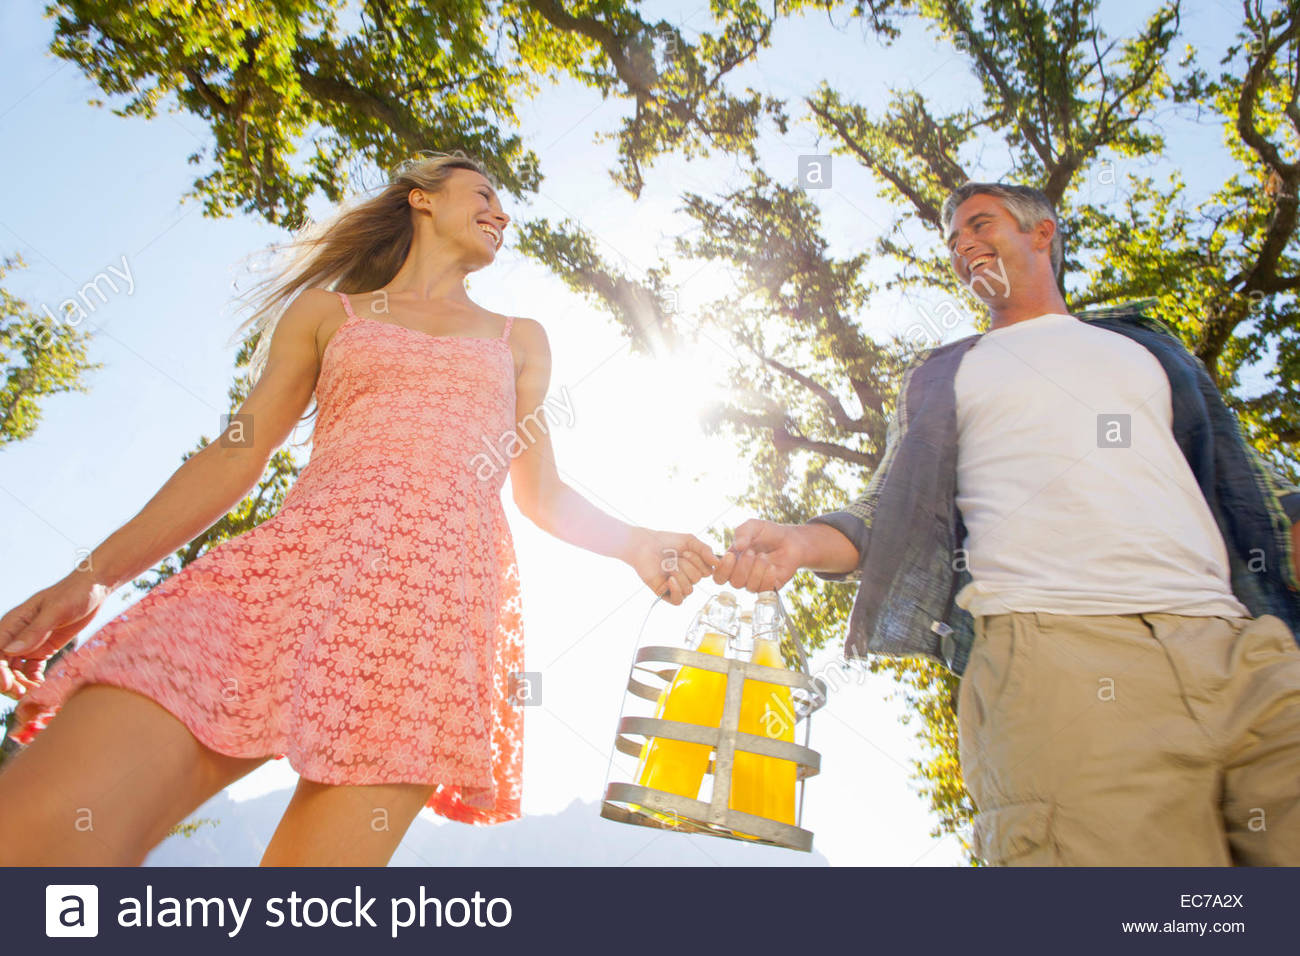 Couple walking with picnic bottles in countryside - Stock Image